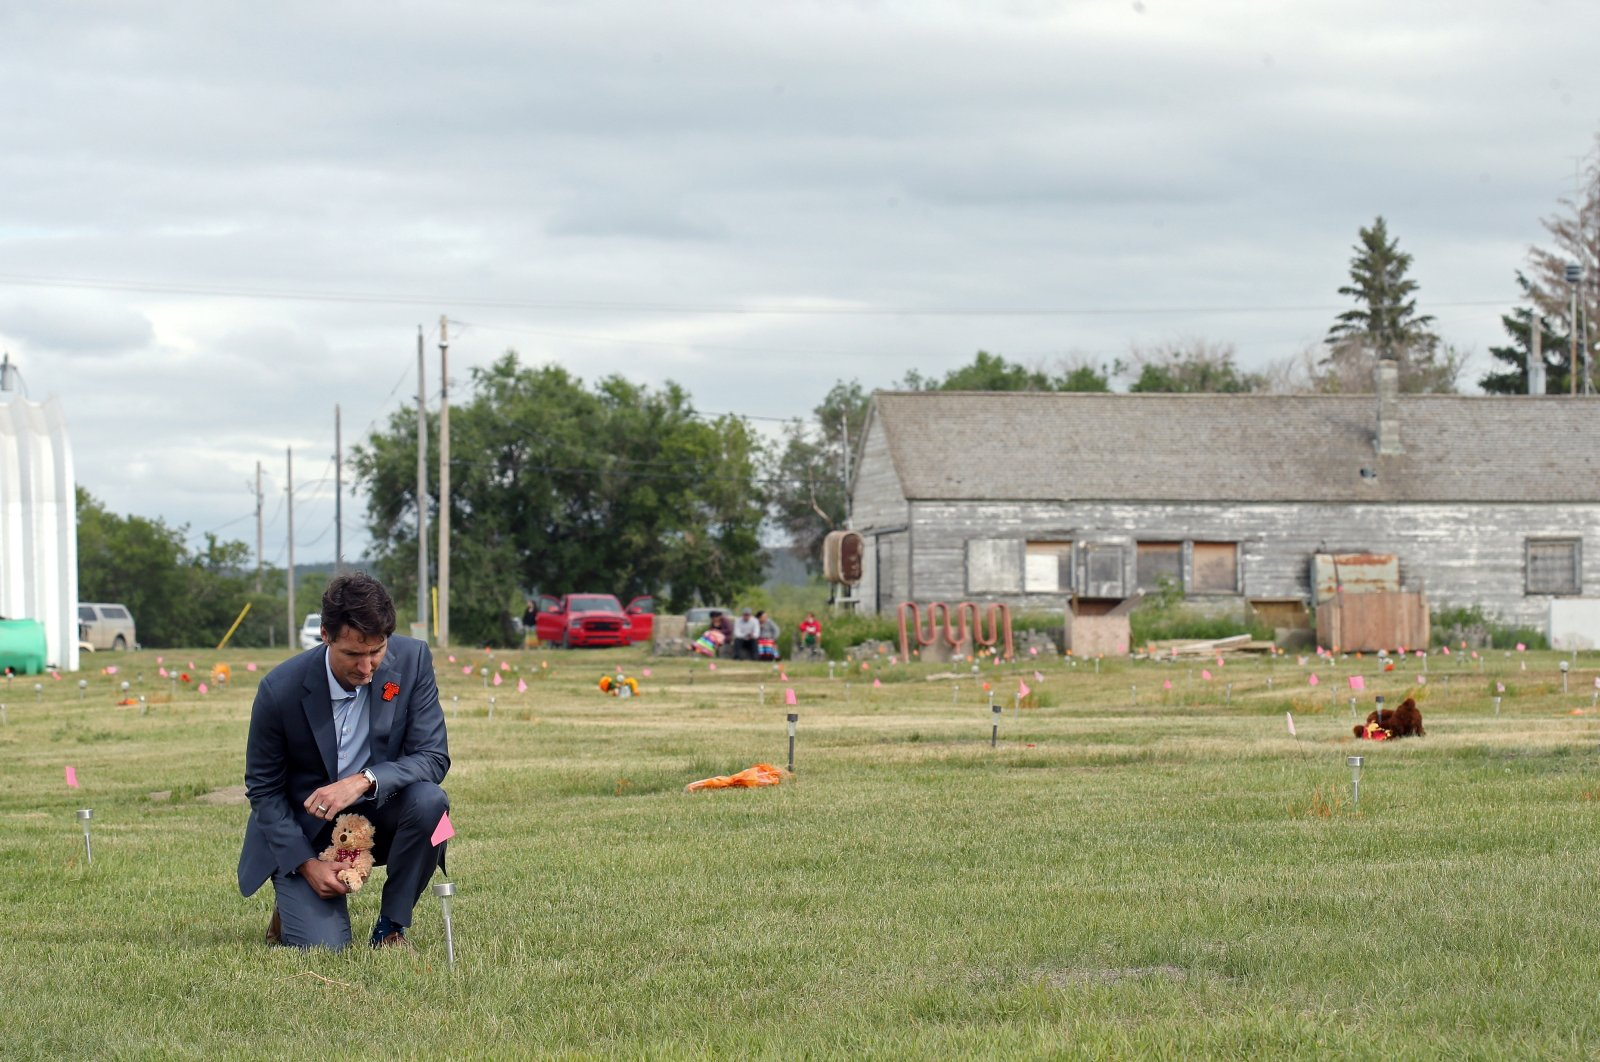 Canada's Prime Minister Justin Trudeau places a teddy bear at an unmarked grave on Cowessess First Nation, where a search found 751 unmarked graves from the former Marieval Indian Residential School near Grayson, Saskatchewan, Canada, July 6, 2021. (Reuters Photo)